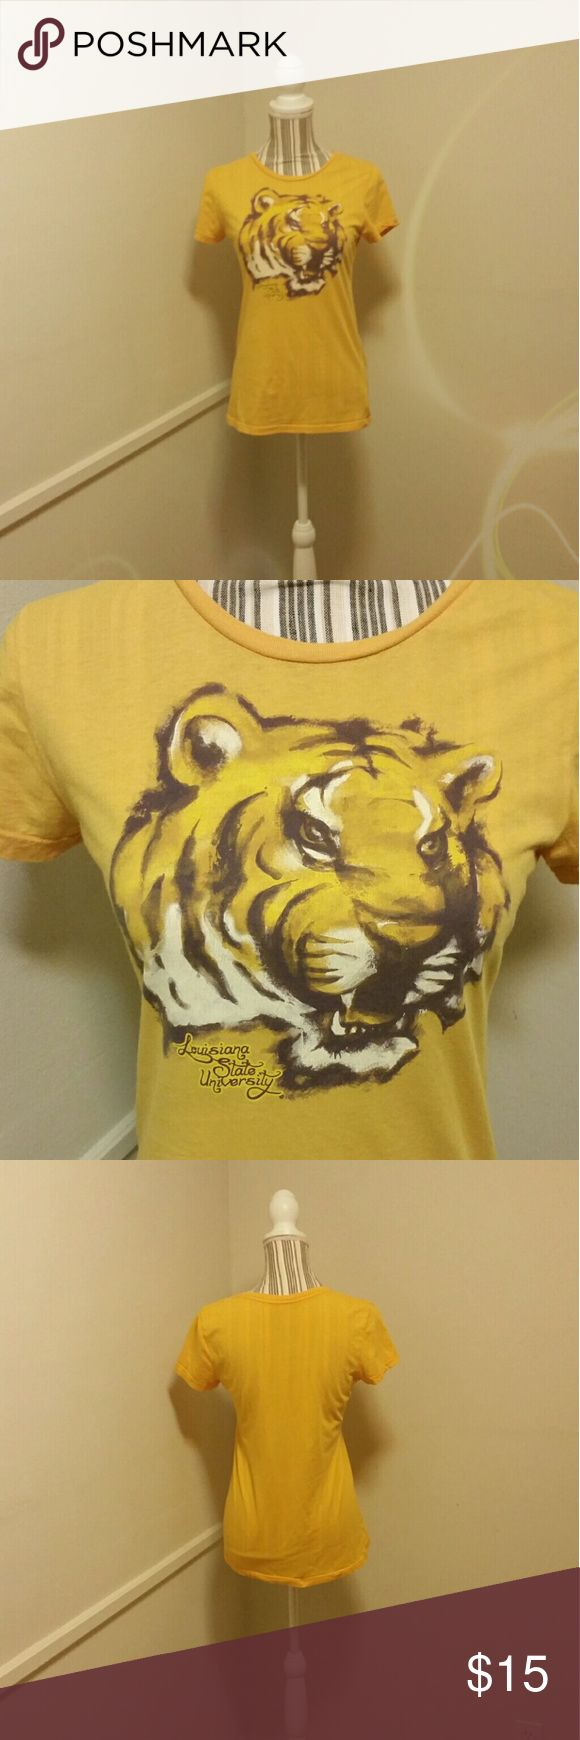 """LSU Tigers """"Mike the Tiger"""" Shirt Sz Large Pre-loved Women's LSU/Louisiana State University Tigers """" Mike the Tiger """" Short Sleeve Round Collar Tee Shirt in Size Large. Shirt is a Dark Yellow/Gold Color. Doesn't stretch but is true to size. Is in excellent condition.  Measurements : Length - 22 inches, Sleeve - 6 inches, Bust - 31 inches.  Geaux Tigers! Tops Tees - Short Sleeve"""